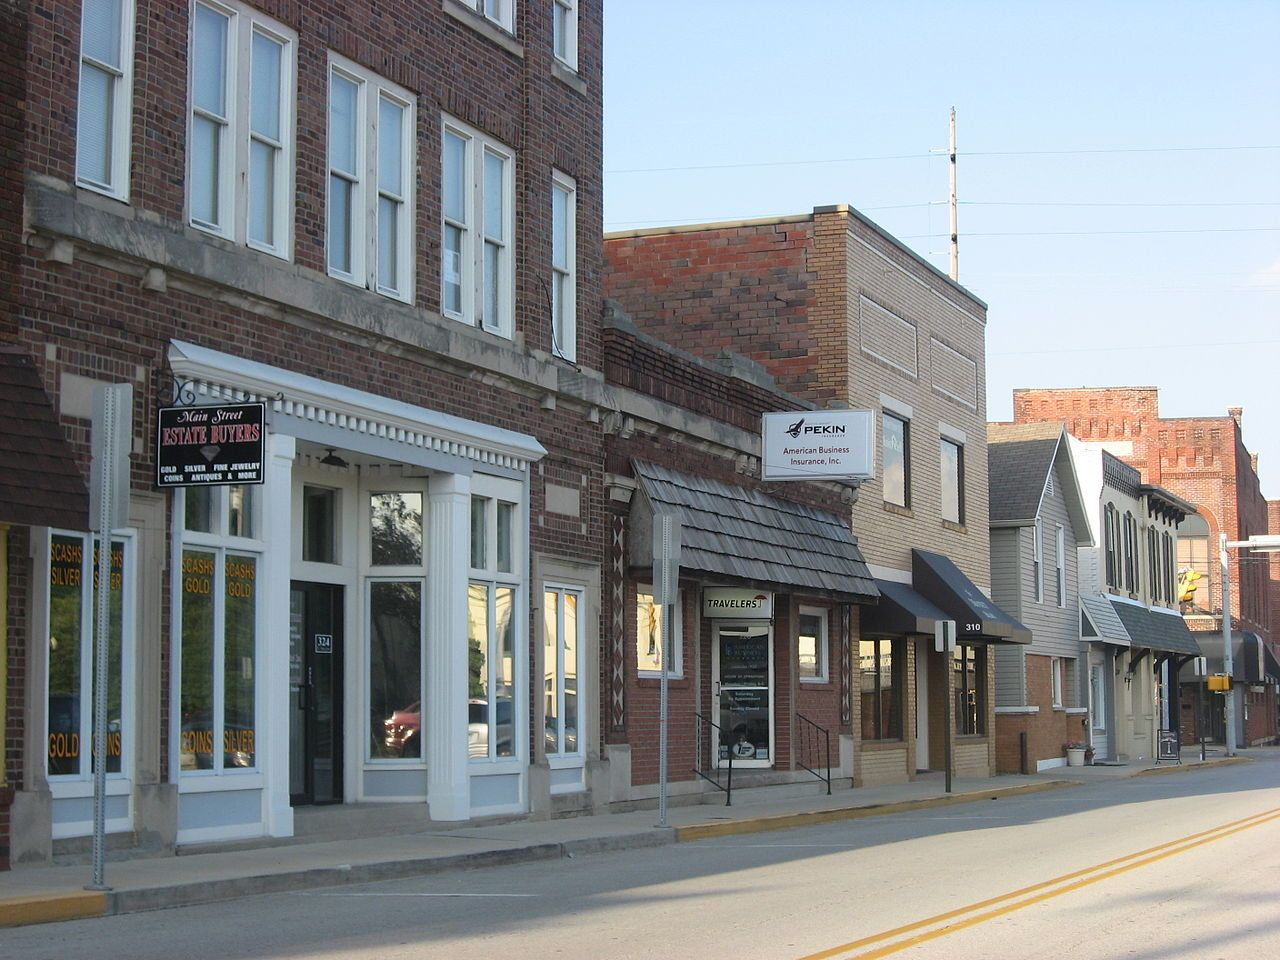 Greenwood Commercial Historic District in Johnson County